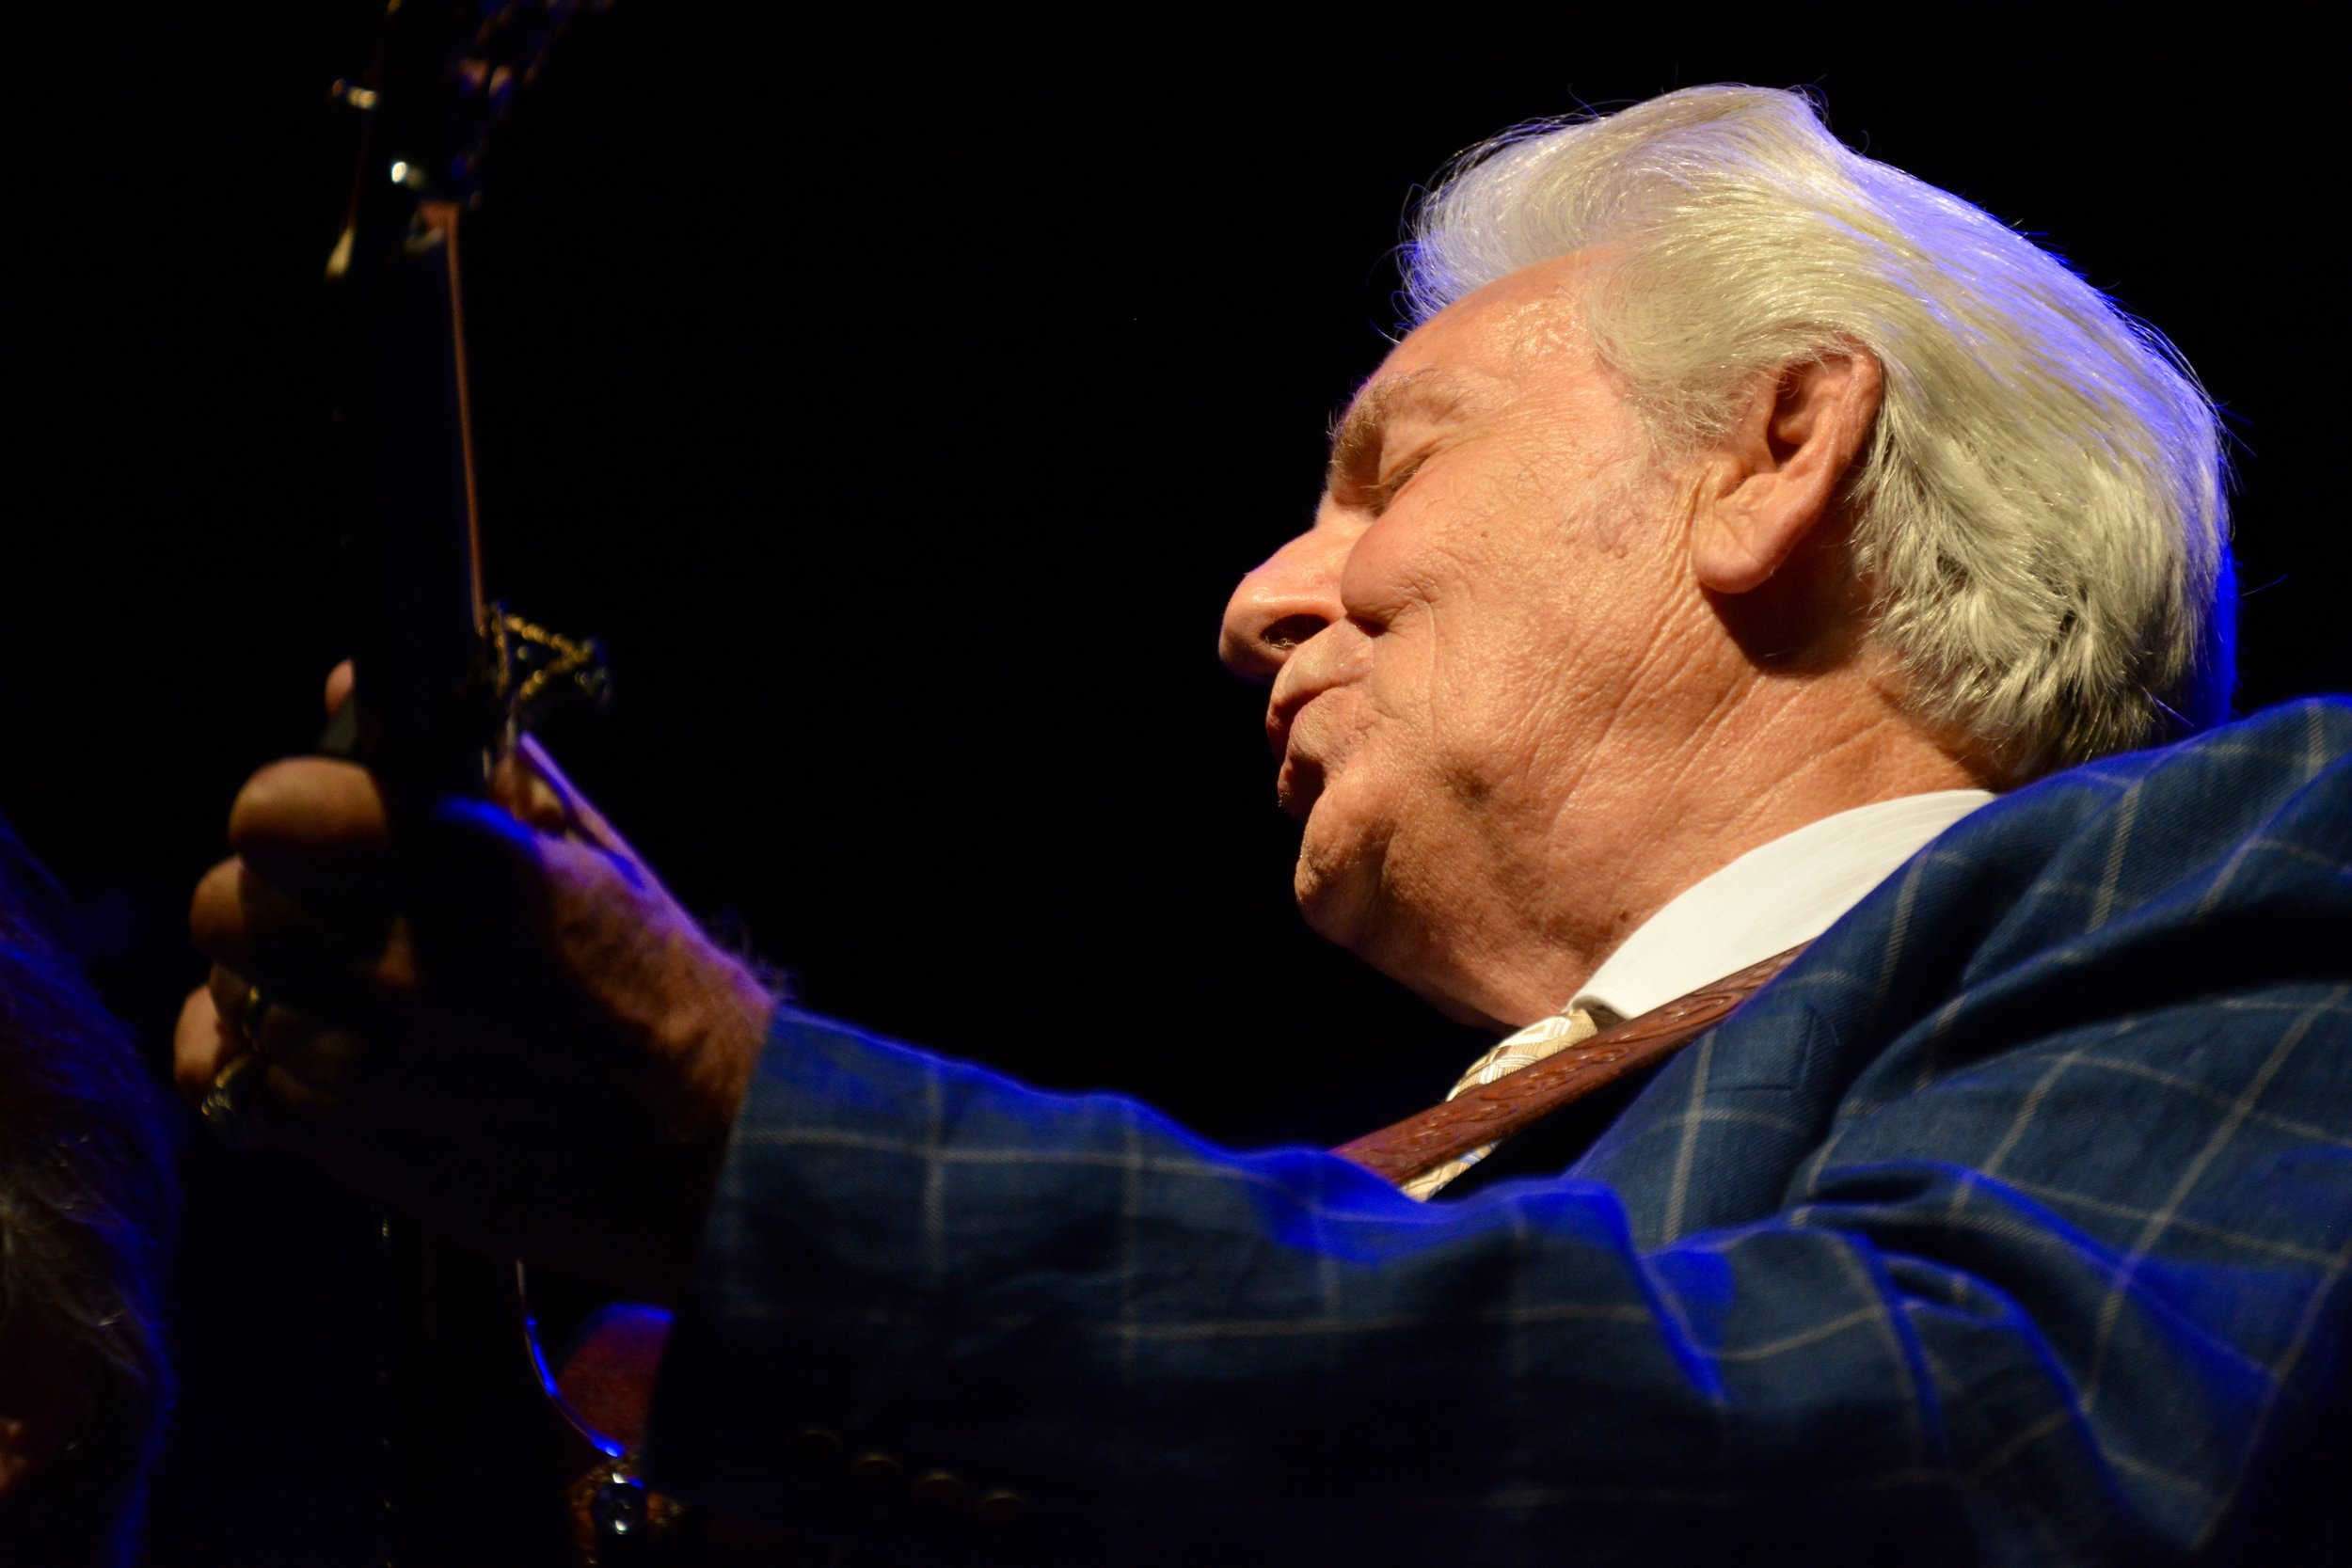 Del McCoury, one of the last first-generation bluegrass musicians still performing. He played with Bill Monroe's Blue Grass Boys.jpg